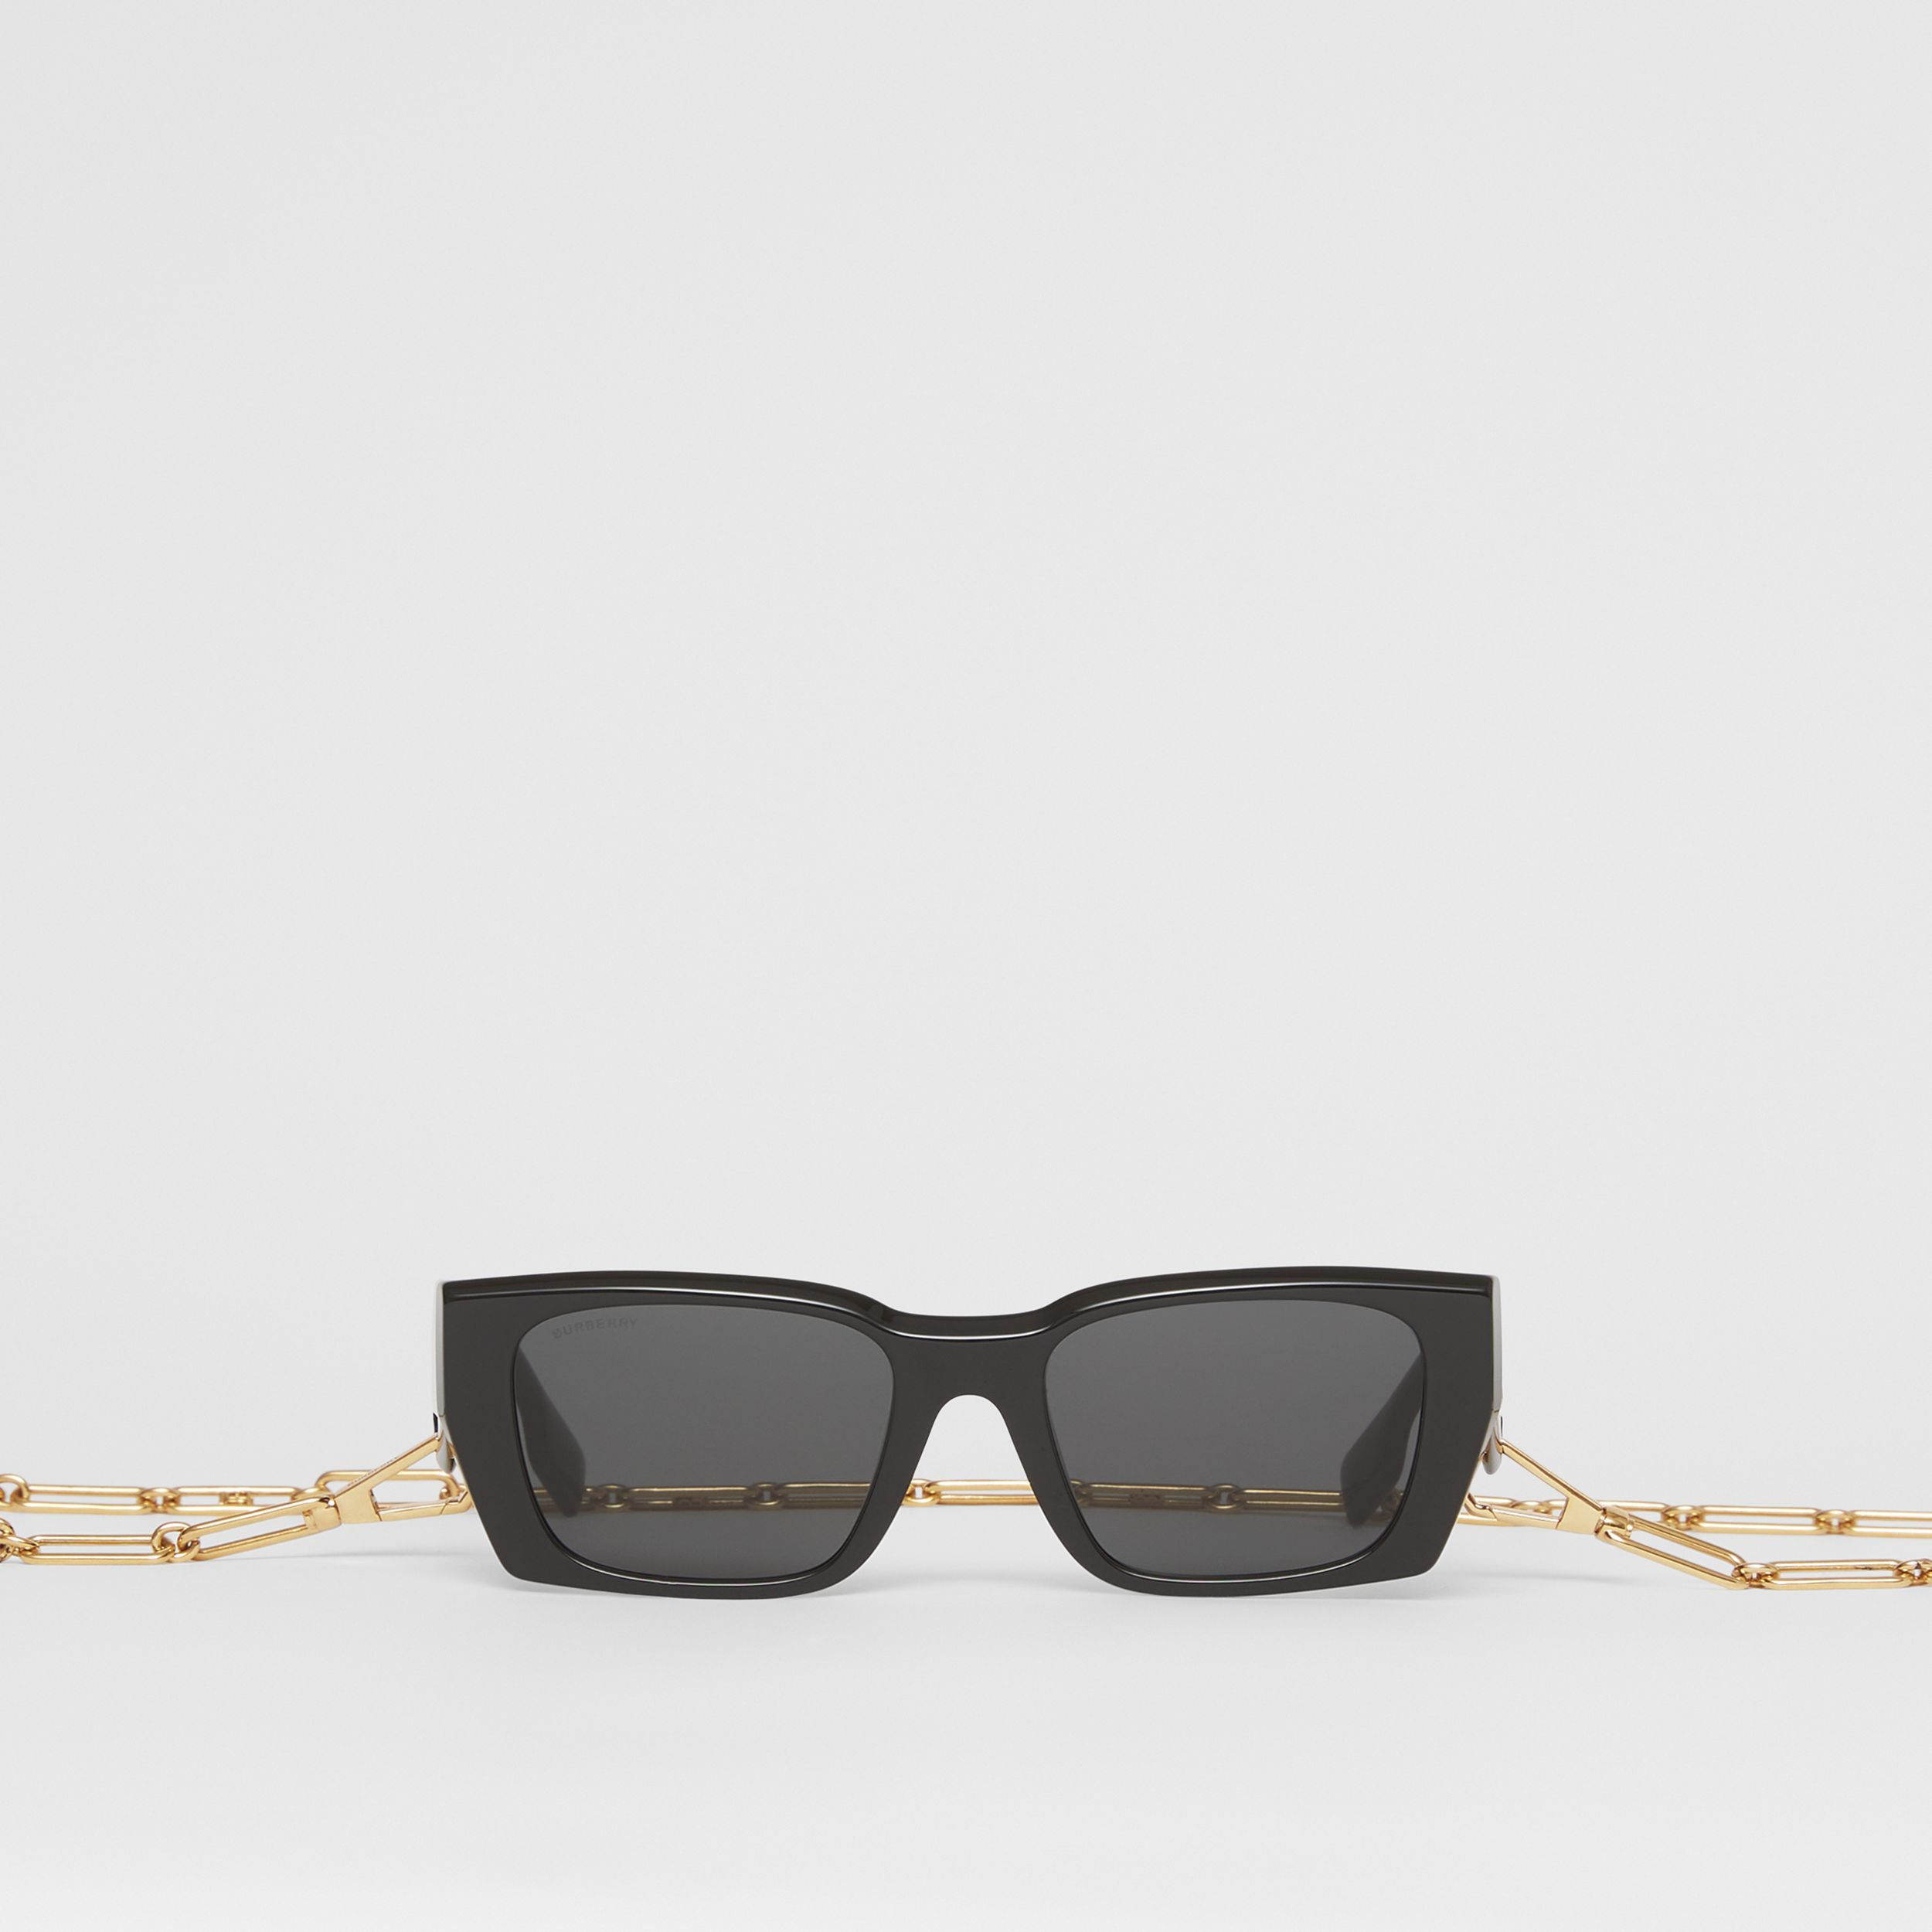 B Motif Rectangular Frame Sunglasses with Chain in Black - Women | Burberry United Kingdom - 1